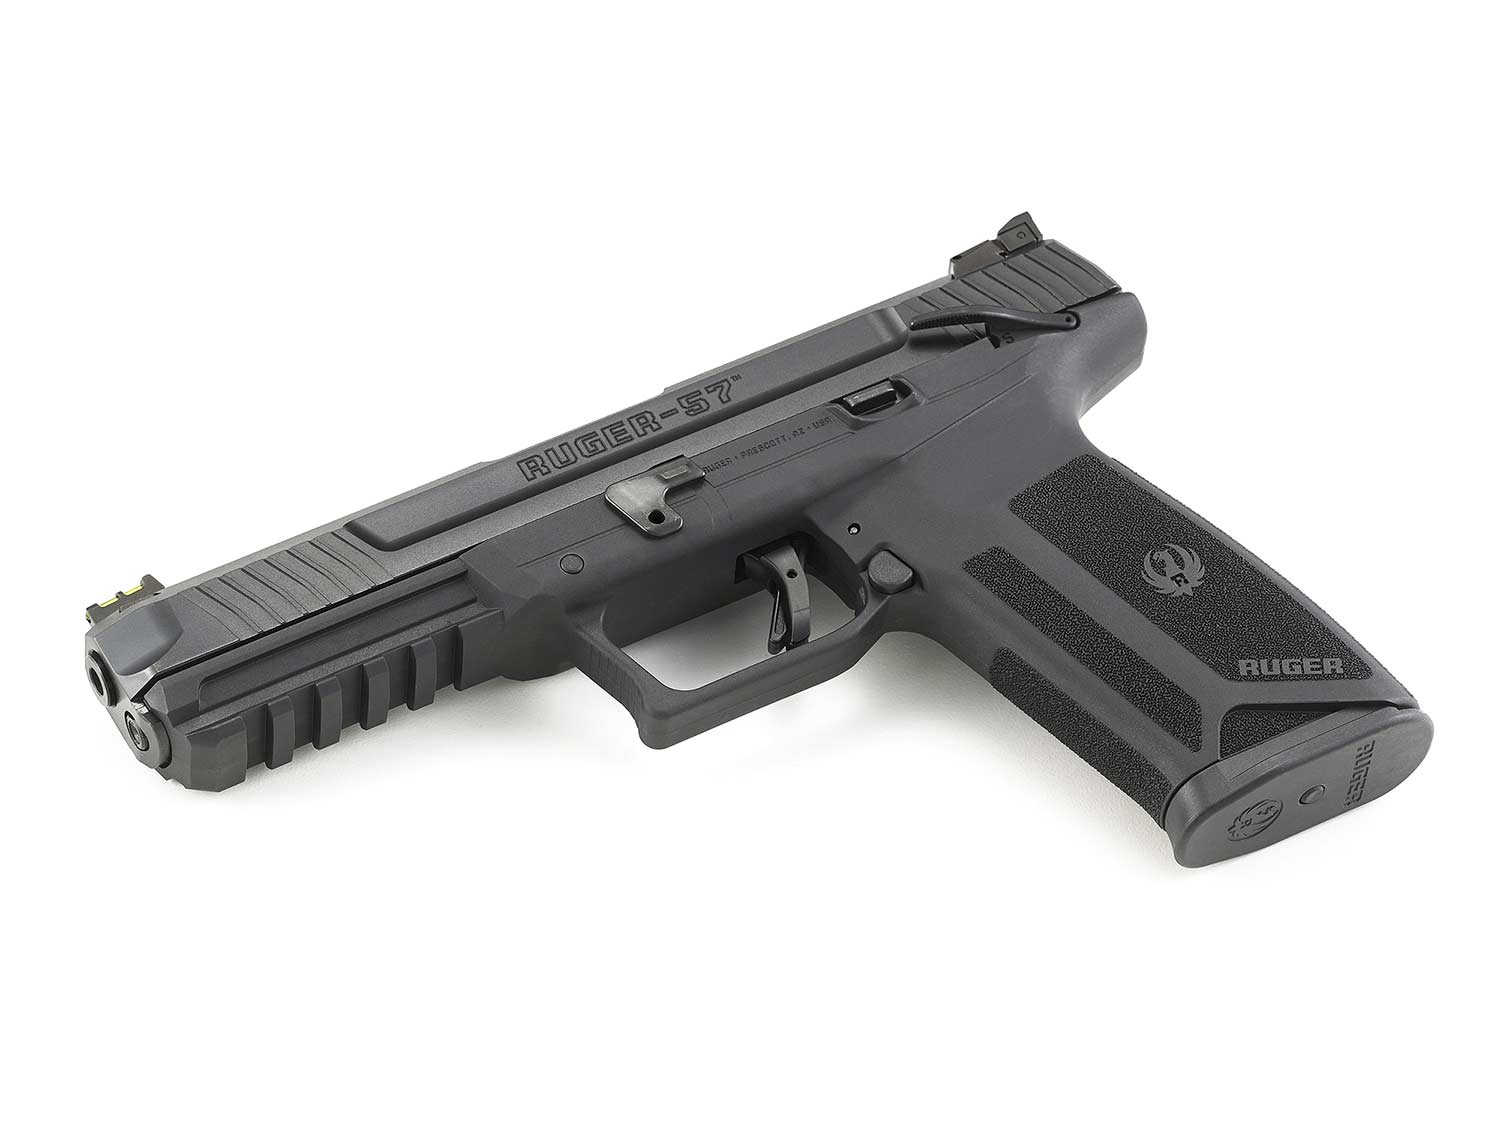 Ruger-57: New Pistol Chambered for Speedy 5.7mm has 20-Round Mag